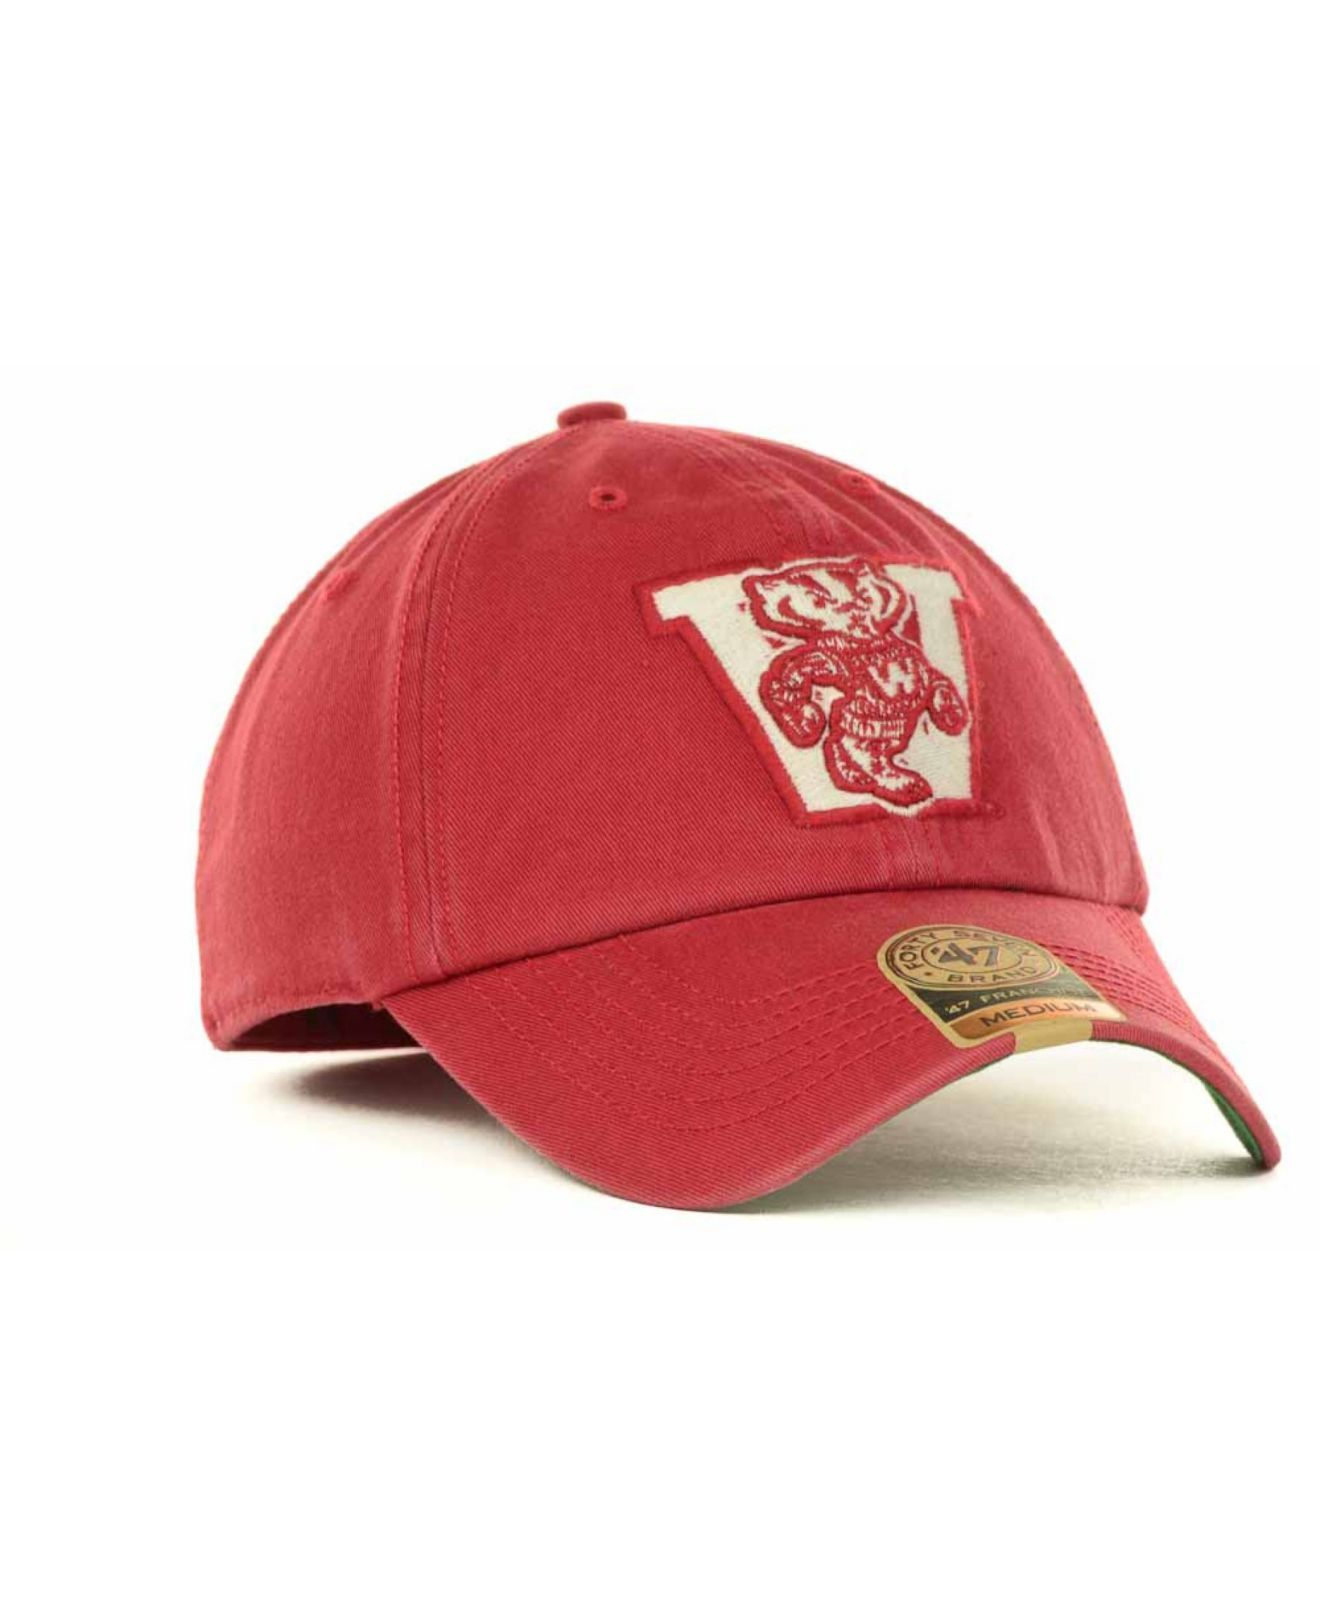 7766c8a1c71e58 vintage wisconsin badger hats - Google Search | The Little Extras ...